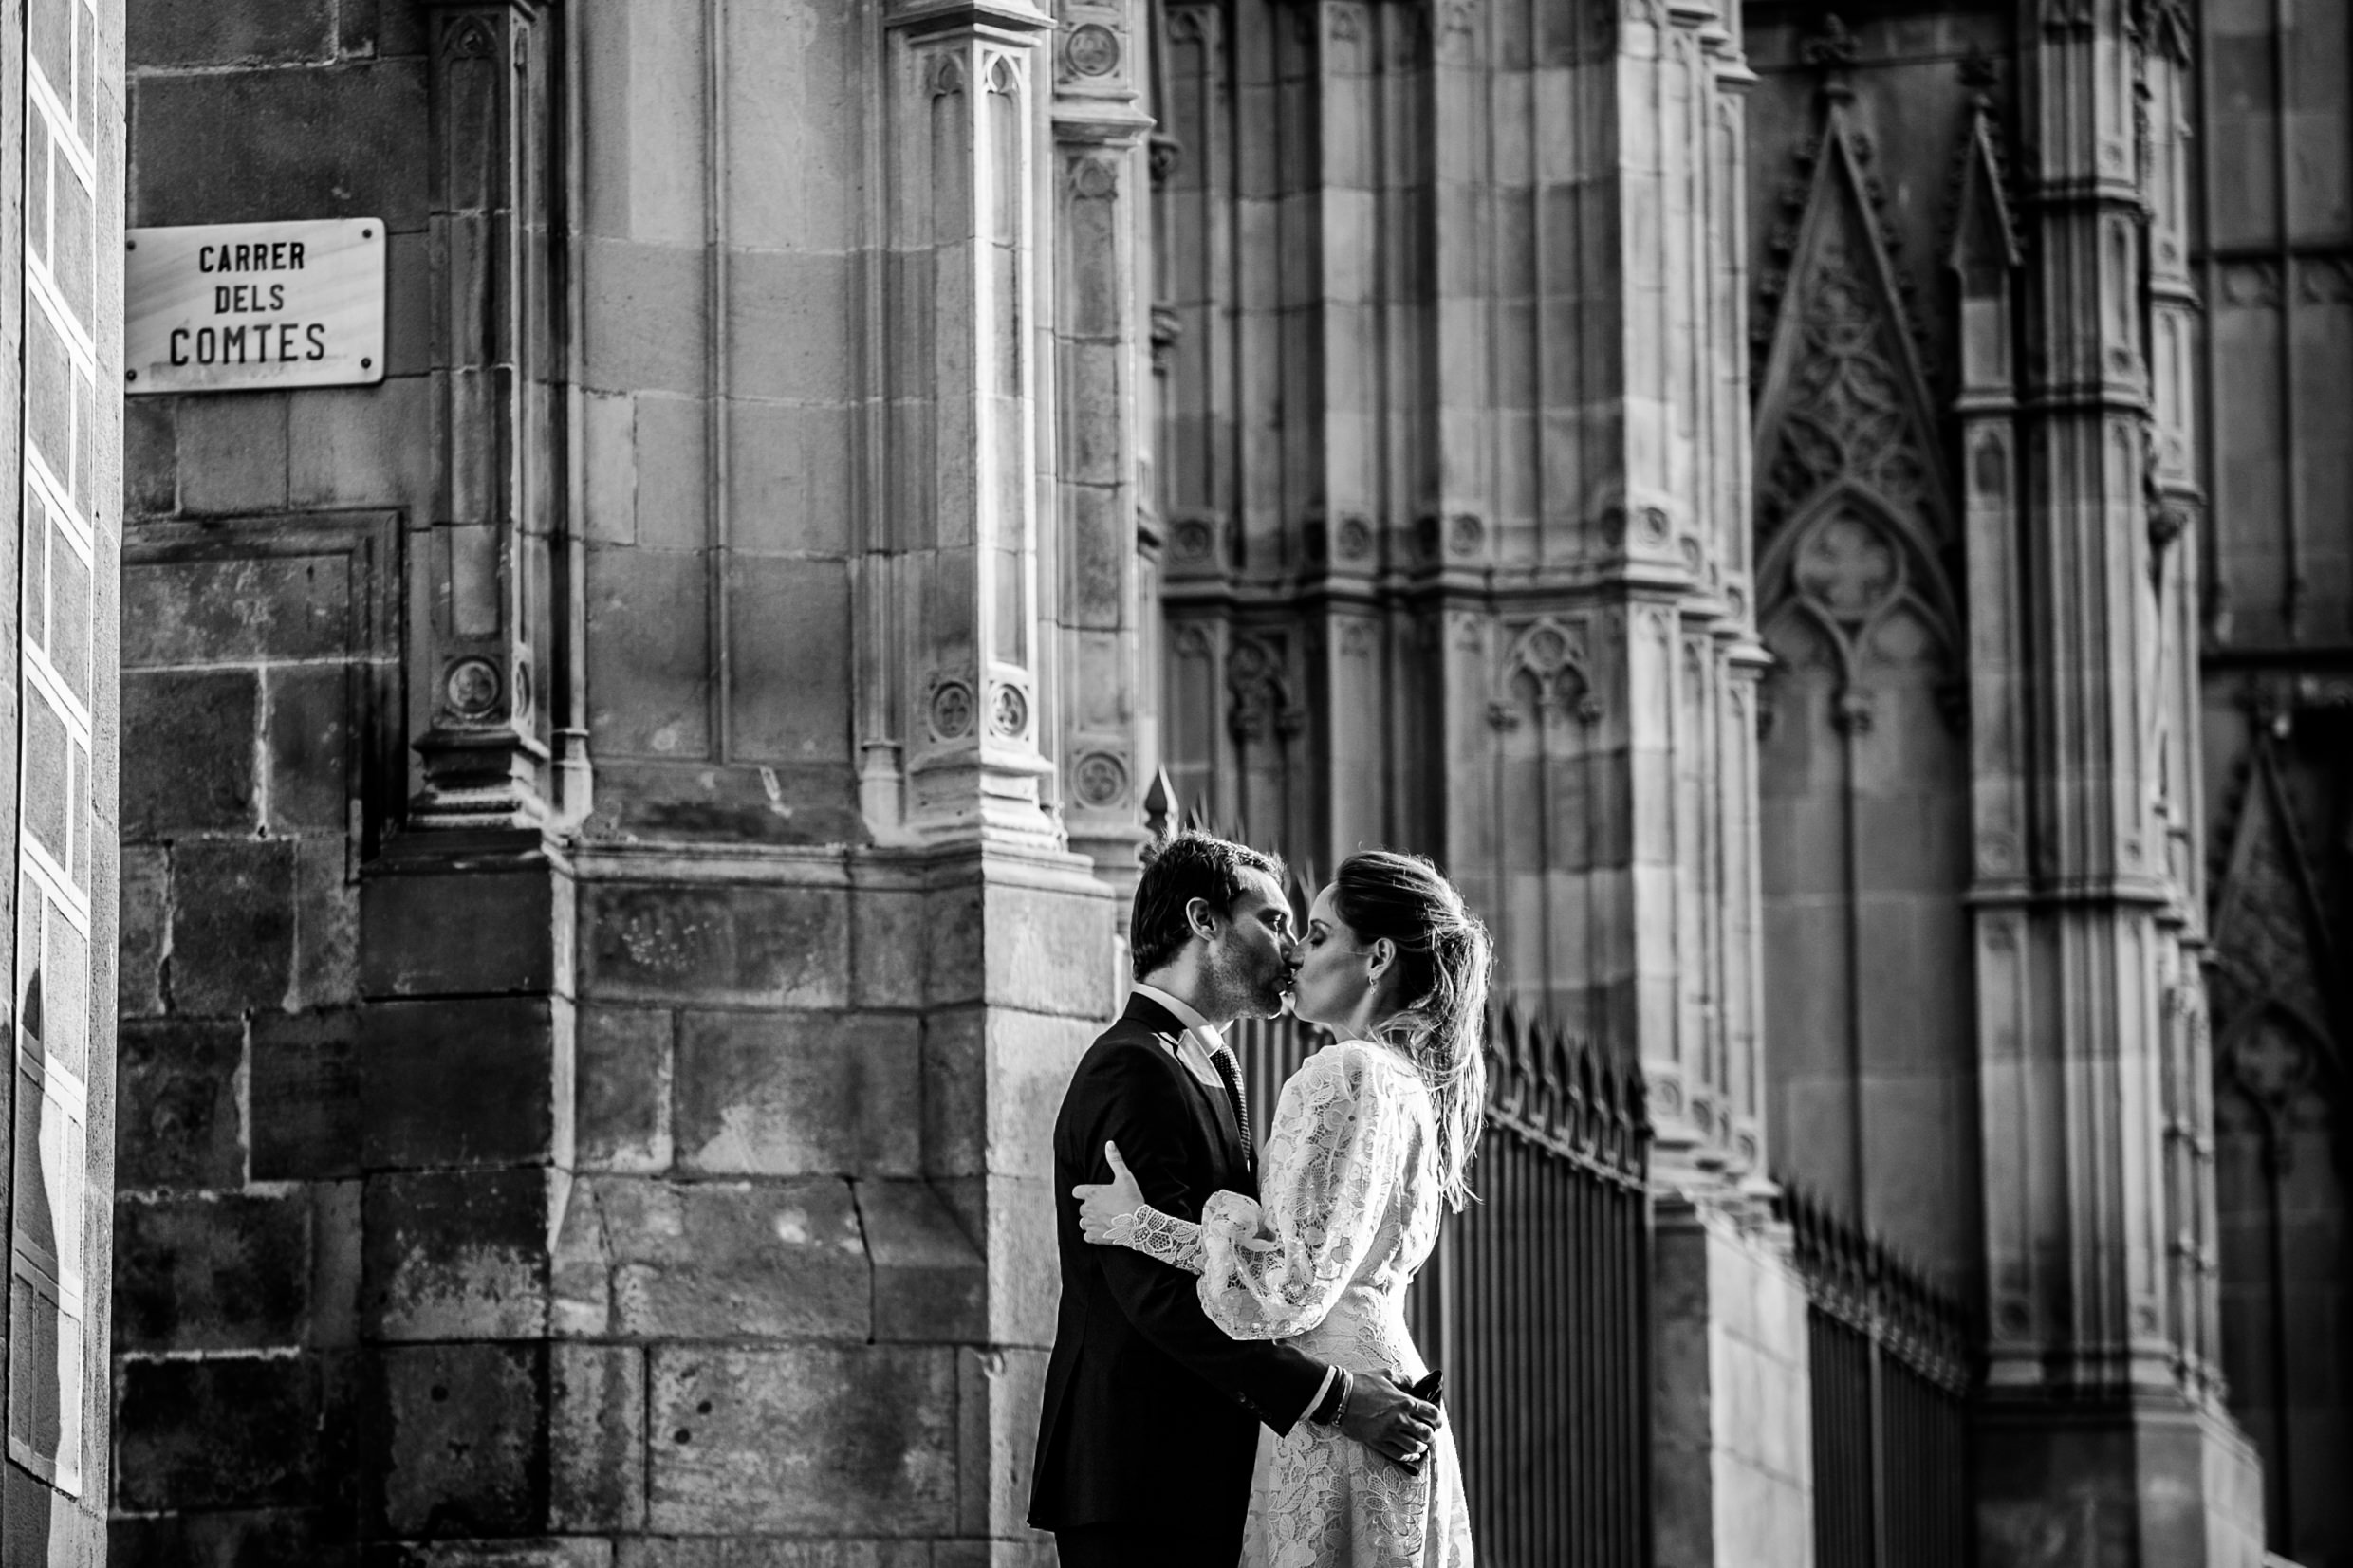 Salo del cent, salo de cent ceremonia, salo de cent casement, salo de cent boda, salo del cent wedding, wedding, wedding photography, wedding photographer, wedding photographer Barcelona, Barcelona, Barcelona boda, Barcelona engagement, Barcelona wedding, Barcelona wedding photographer, Barcelona wedding planner, wedding ideas, wedding inspo, wedding décor, Barcelona session de fotos, fotografo boda Barcelona, Barcelona fotografo boda, real wedding, real moments, people, love, family, get married Barcelona, Spanish wedding photographer, Barcelona destionation wedding, Barcelona love session.